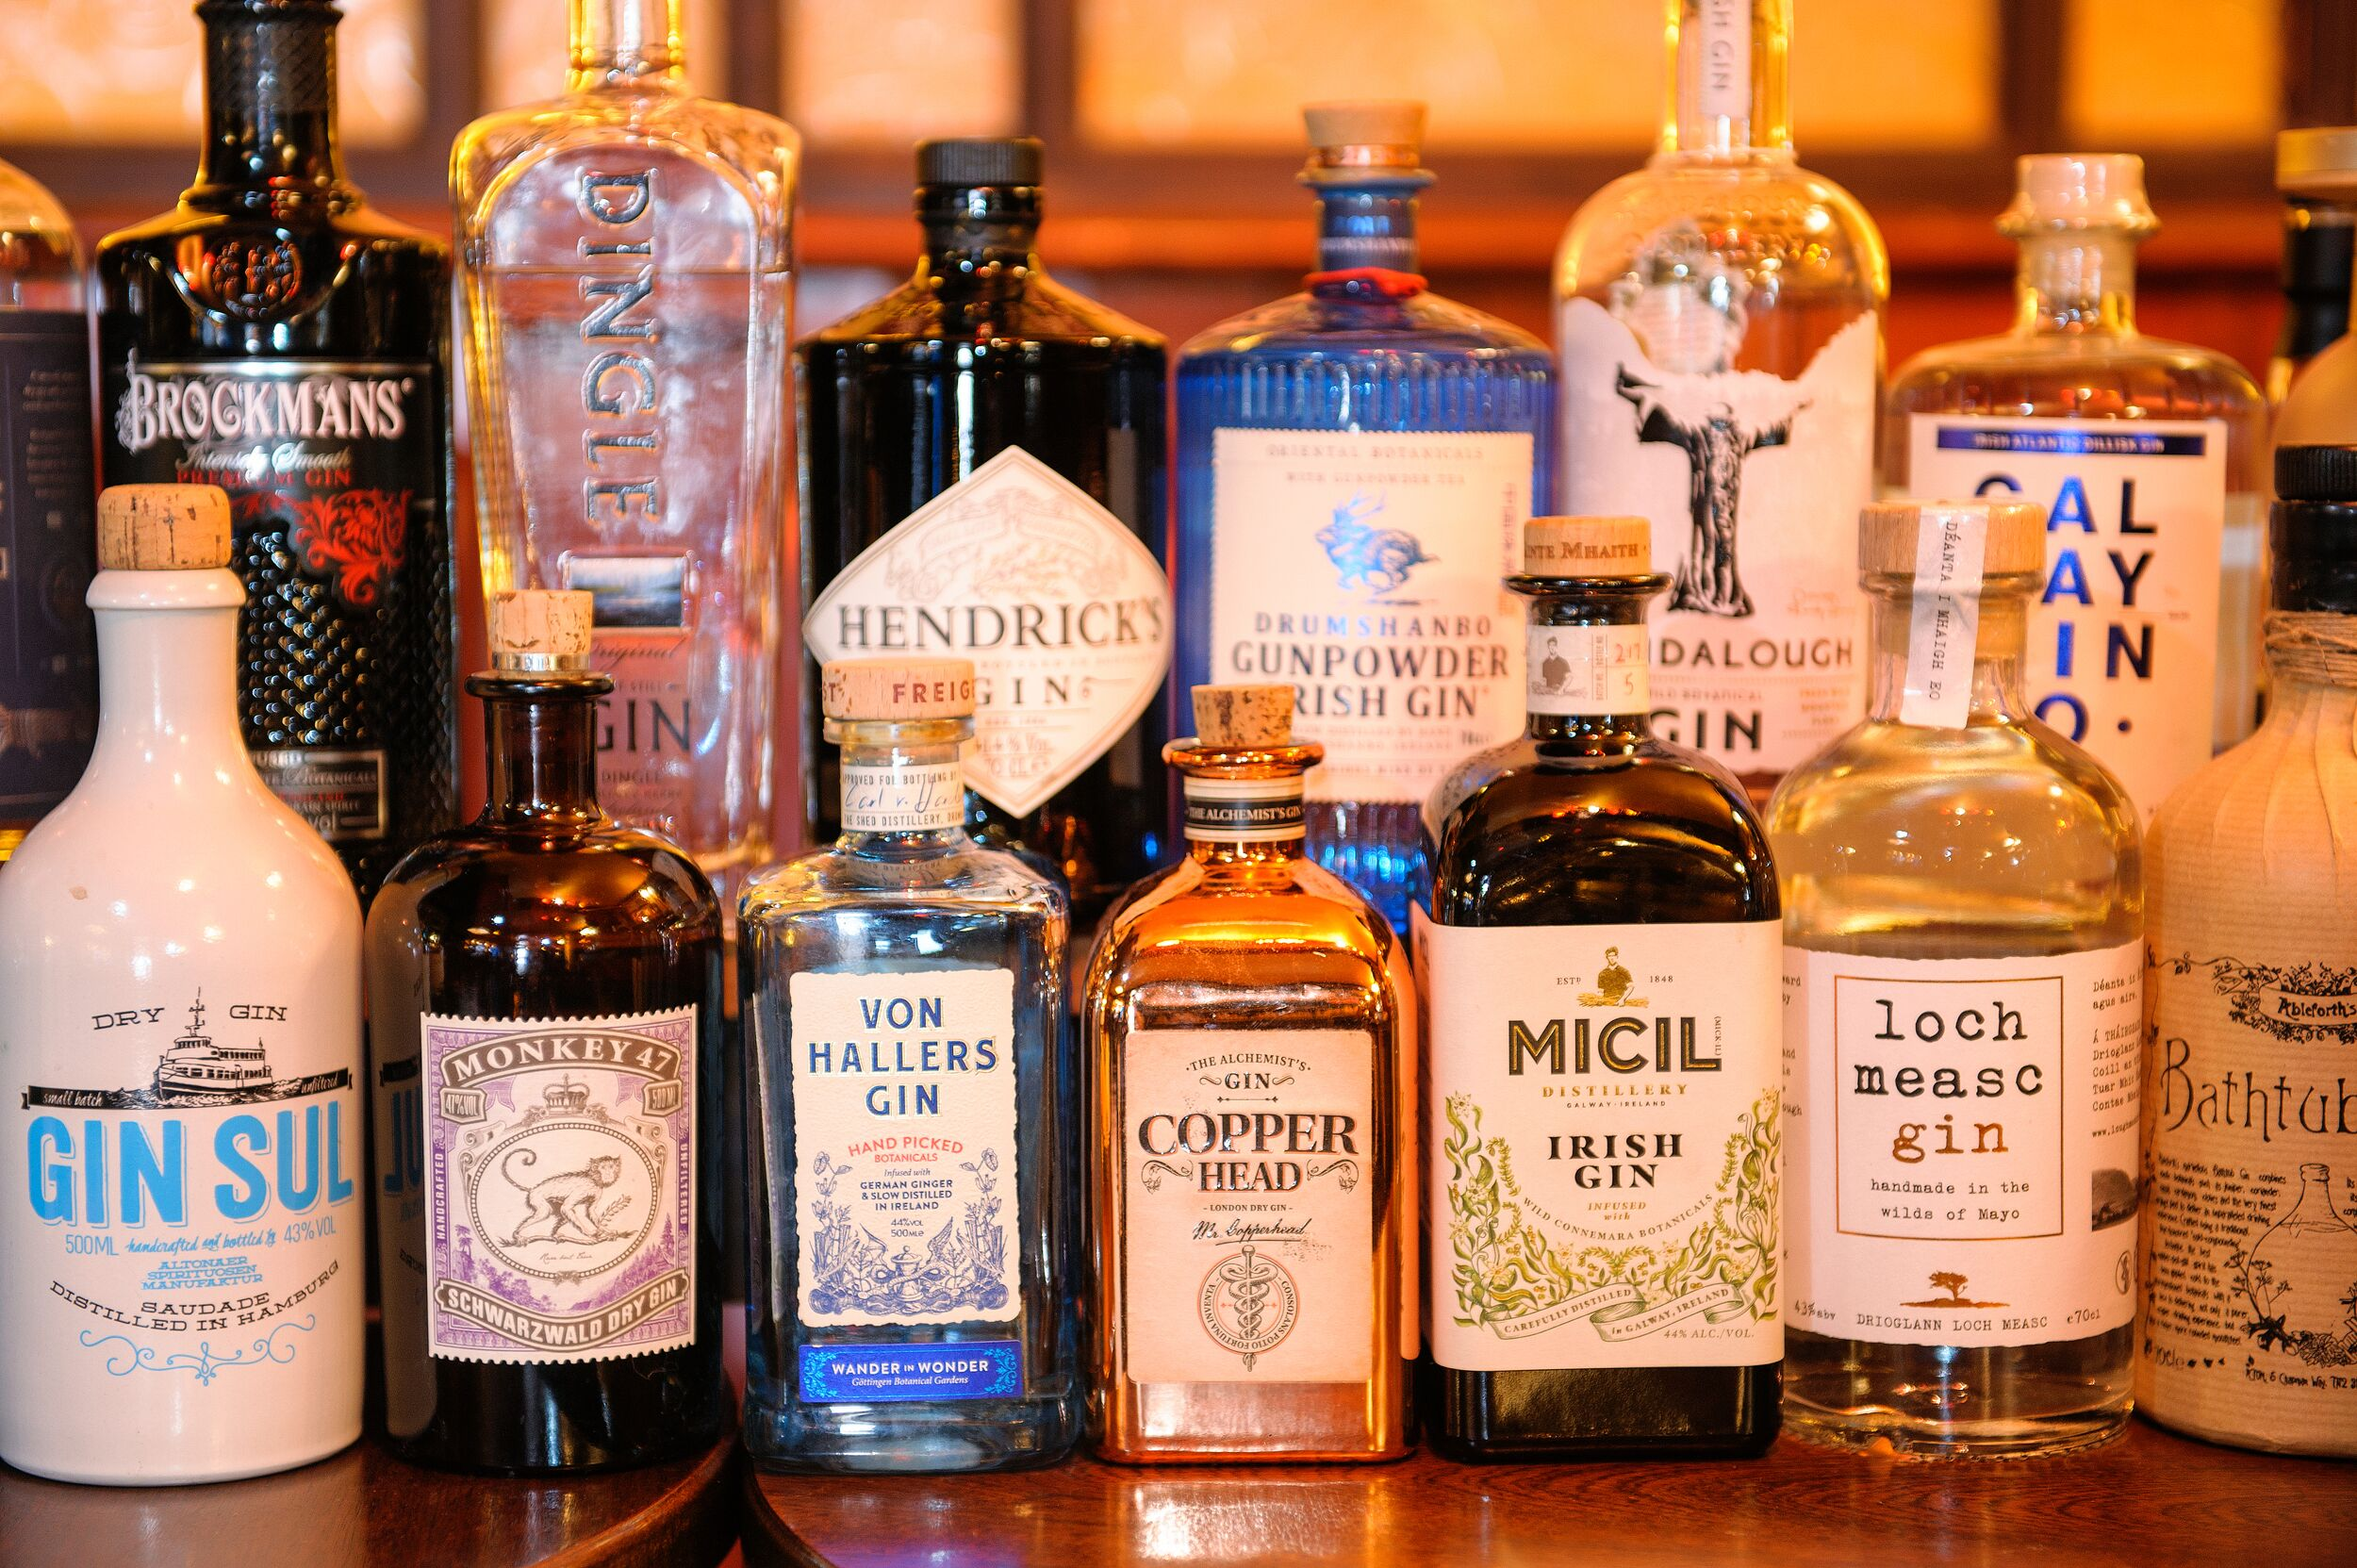 A Selection of Our Gins